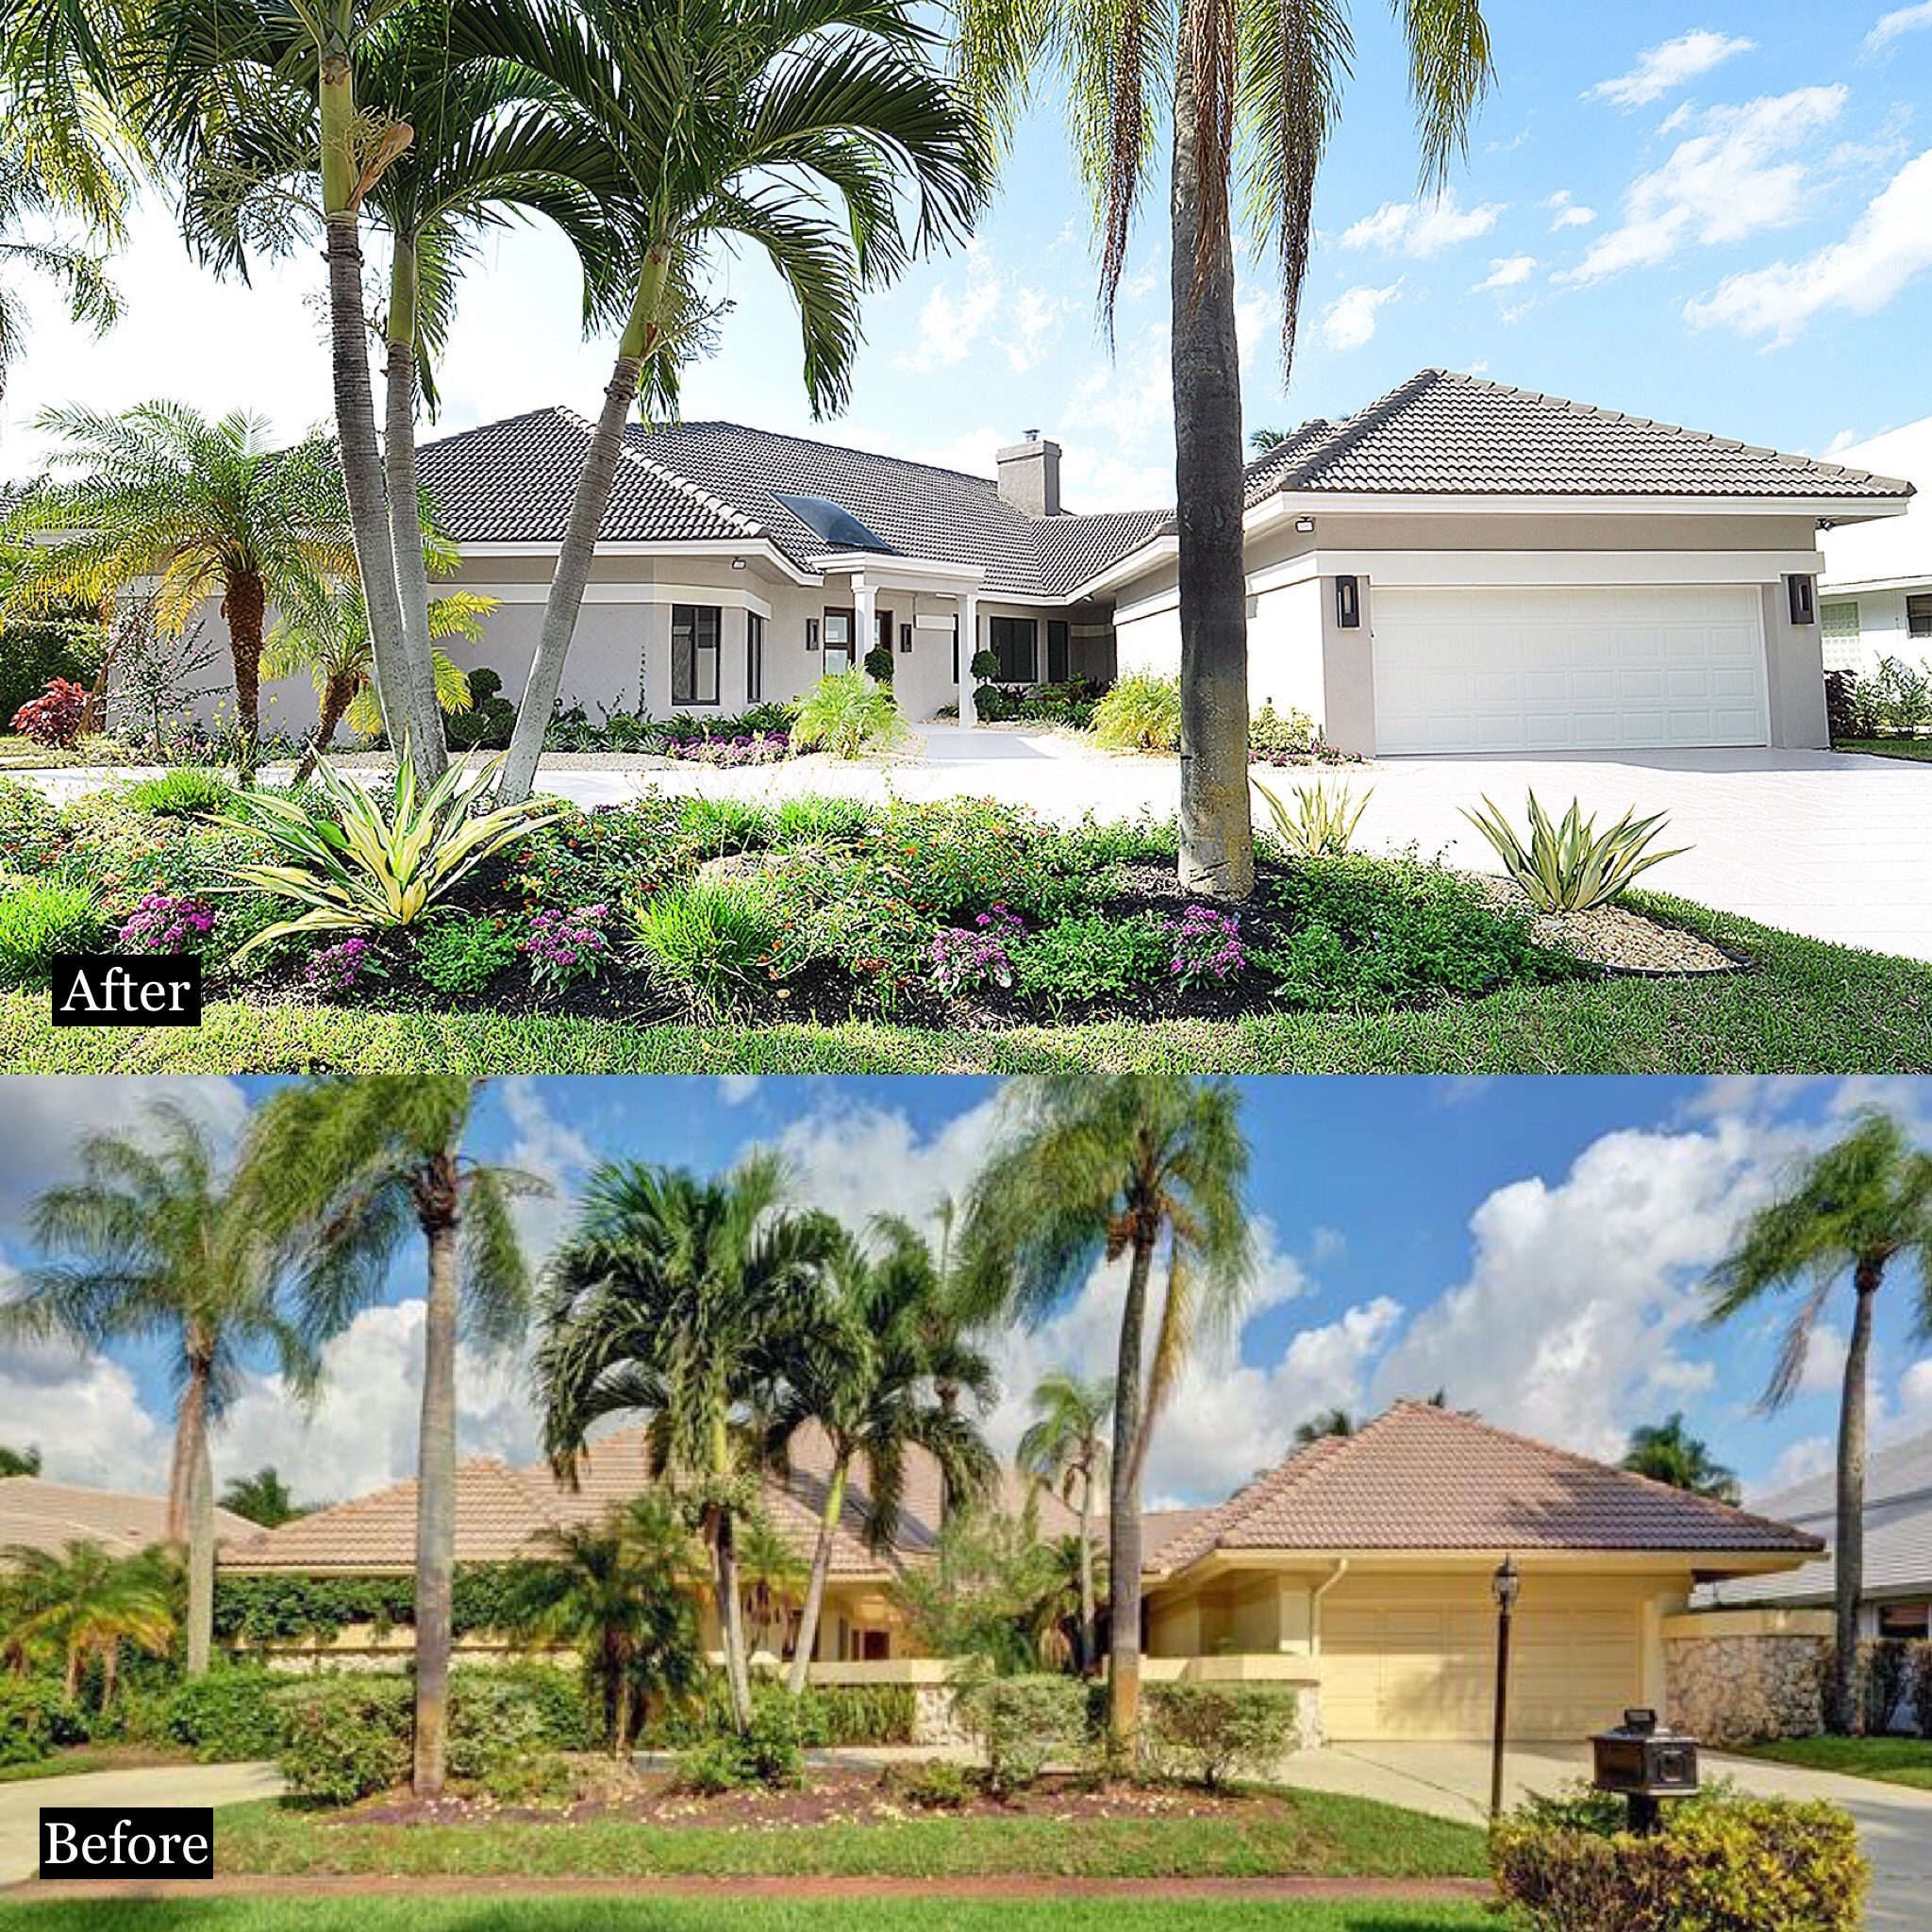 mag real estate & development transformation before after construction general contractor builder renovation south florida boca raton new custom luxury home for sale interior design st. andrews country club 7026 ayrshire lane 2.jpg